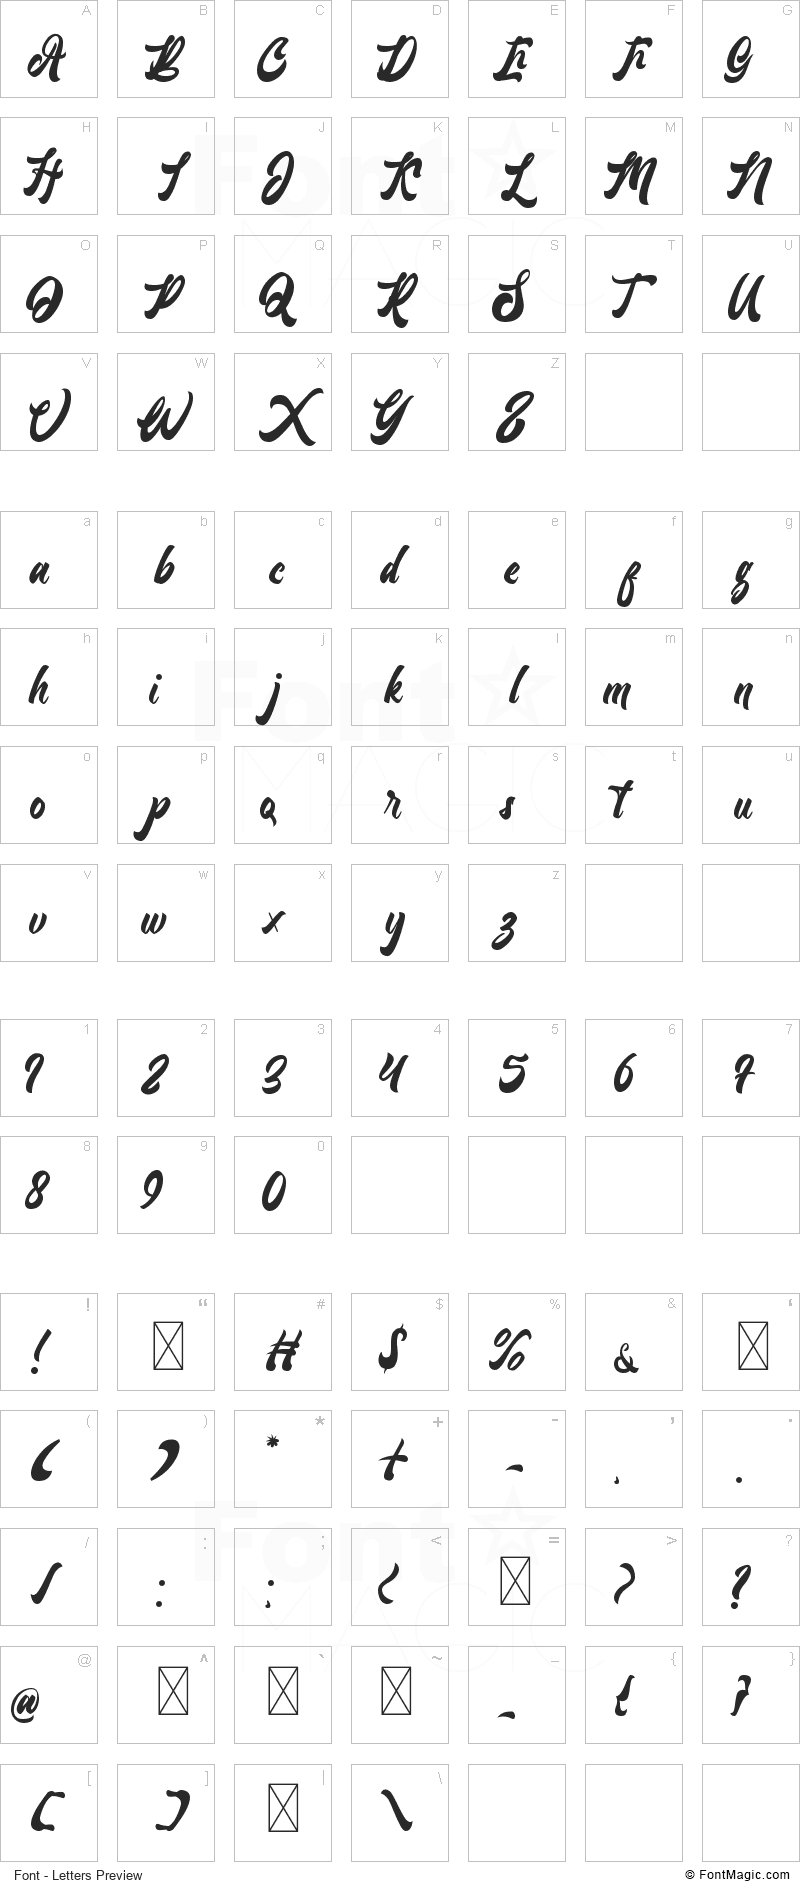 Lantenia Font - All Latters Preview Chart